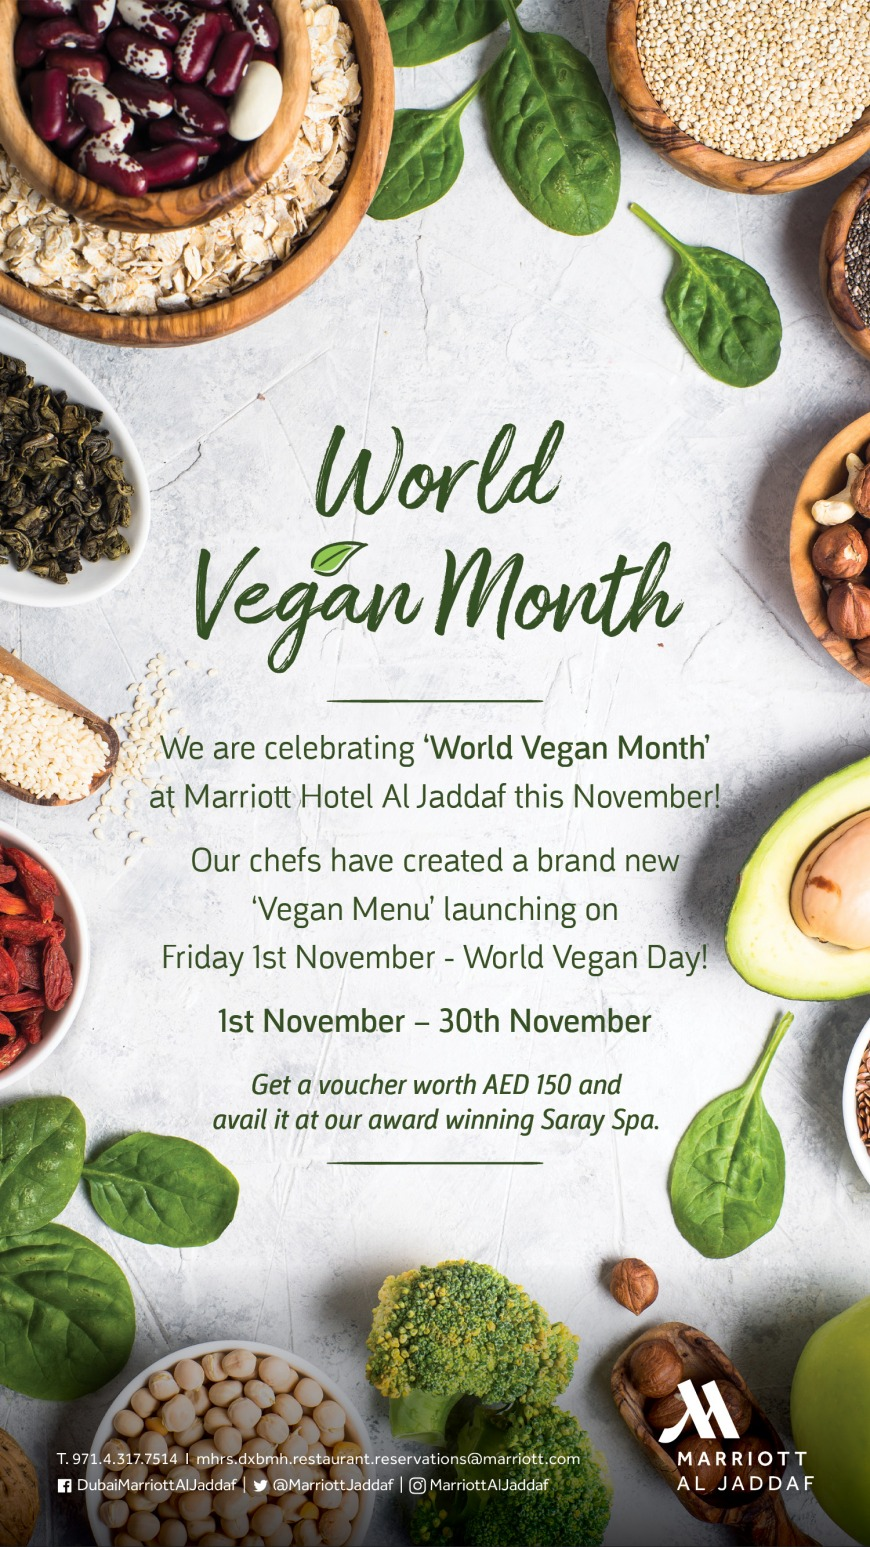 Marriott Hotel al Jaddaf World Vegan Month